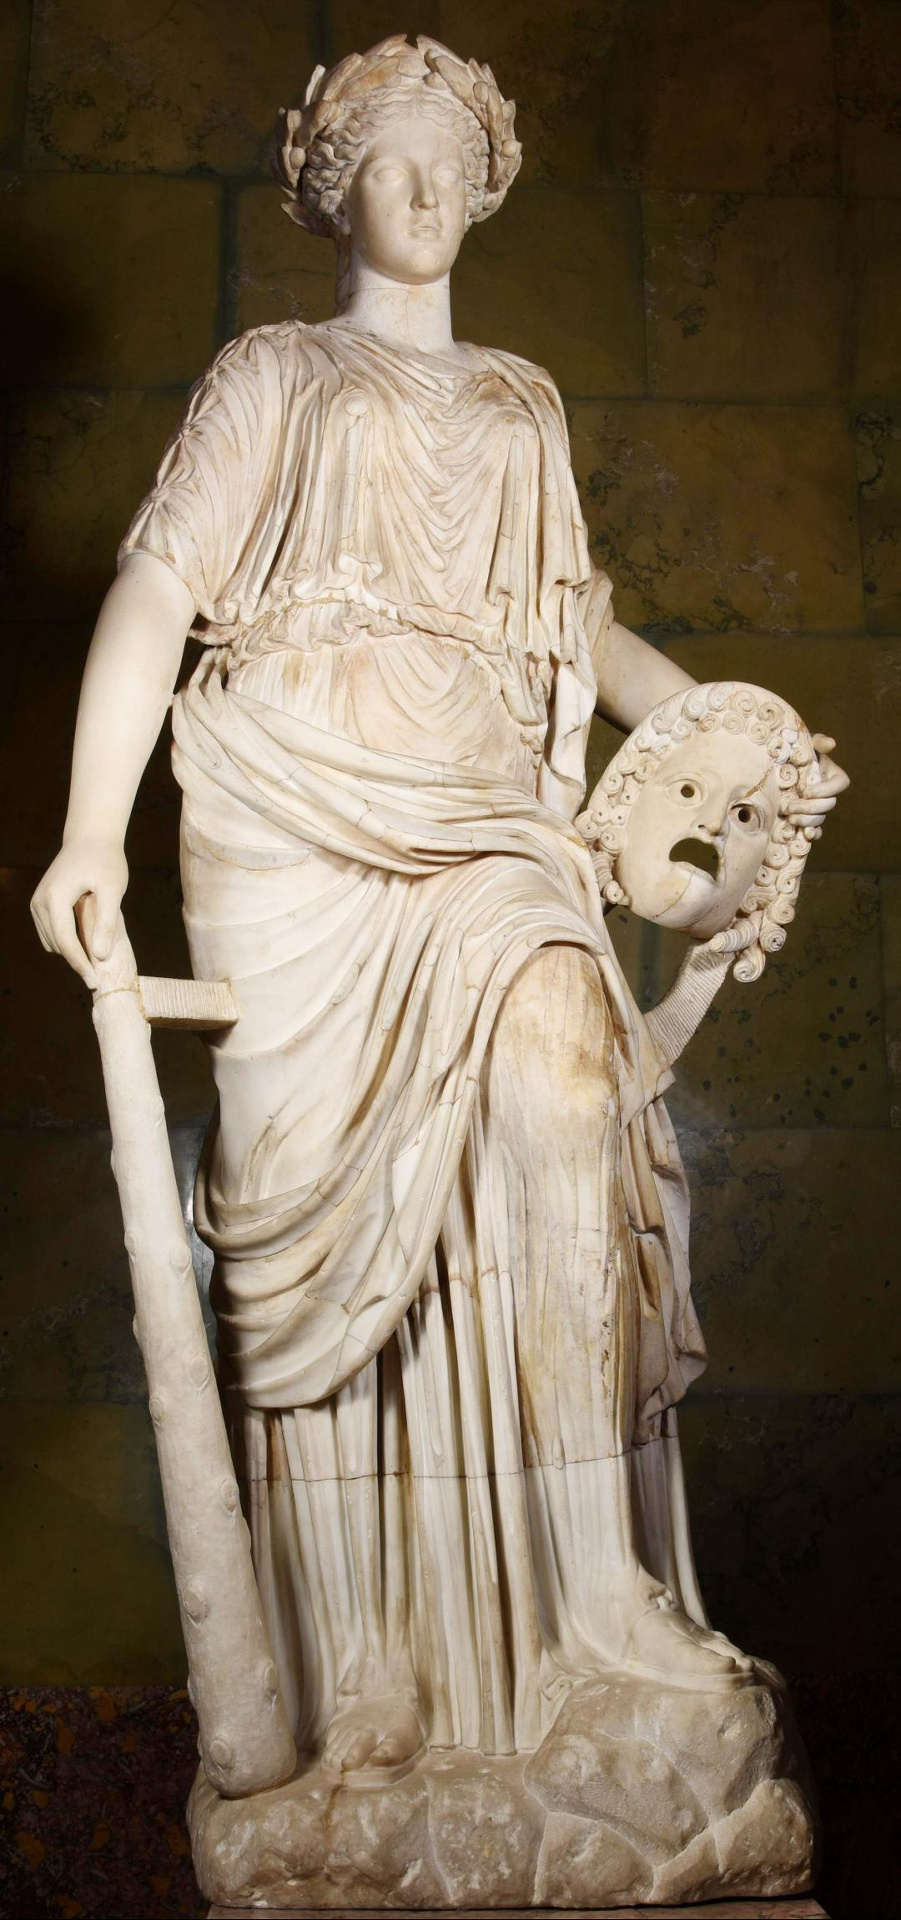 Marble statue of a woman leaning on a club with her right hand and holding a theater mask on her hip.